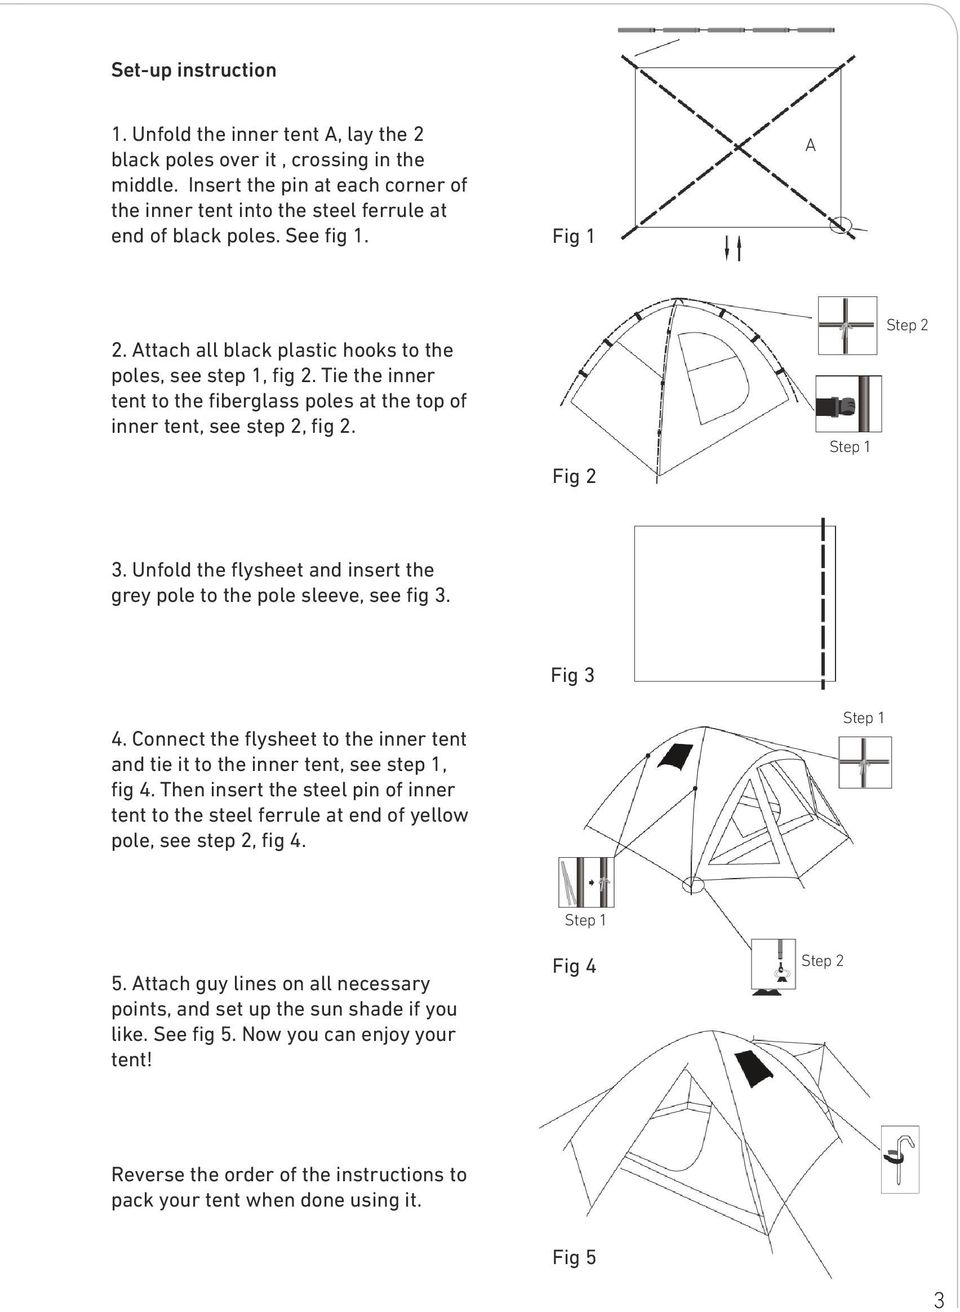 Unfold the flysheet and insert the grey pole to the pole sleeve, see fig 3. Fig 3 4. Connect the flysheet to the inner tent and tie it to the inner tent, see step 1, fig 4.